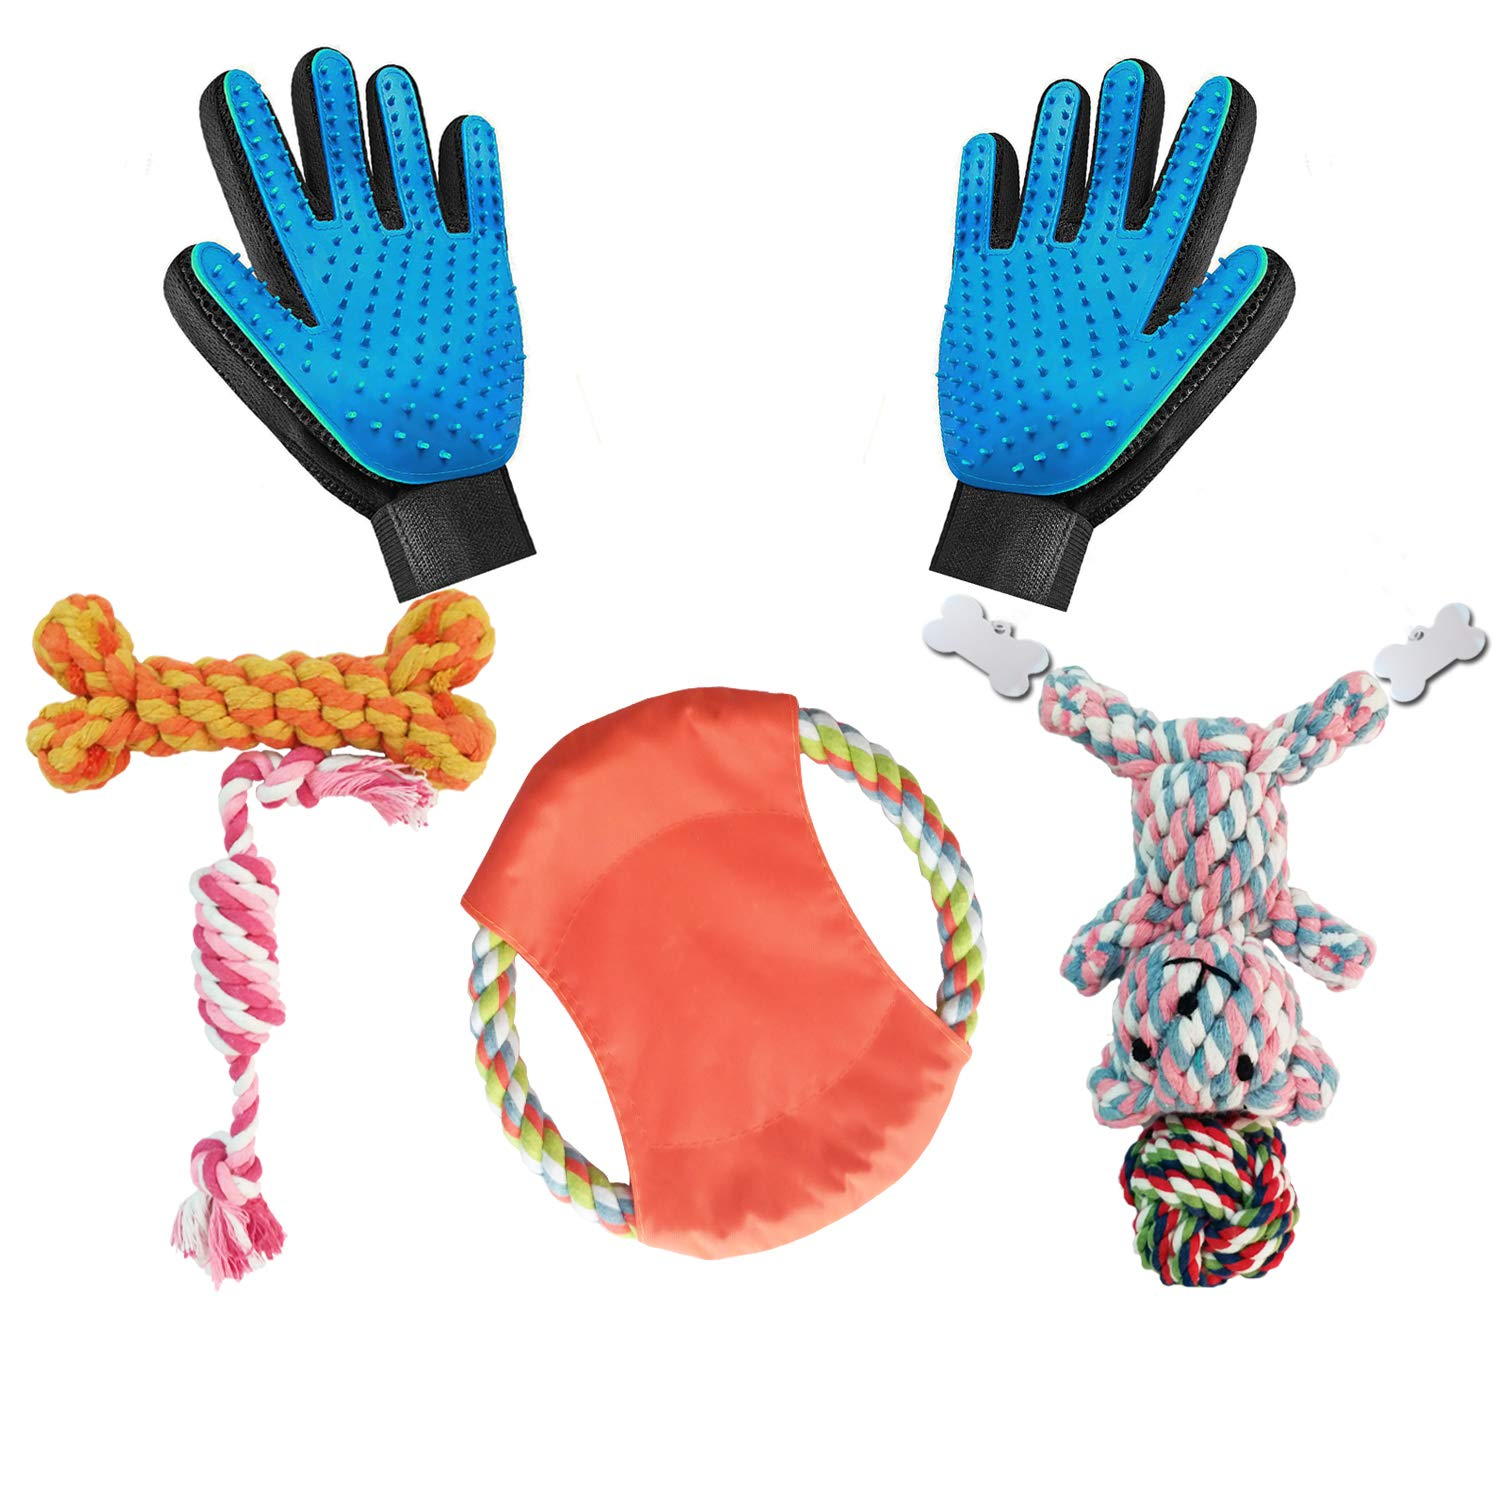 Dog Rope Toys for Aggressive Chewers-Set of 9 Nearly Indestructible Dog Toys with Pet Grooming Brush Glove - Bonus Giraffe Rope Toy with pet ID Tag- Efficient Pet Hair Remover Mitt - Massage Tool